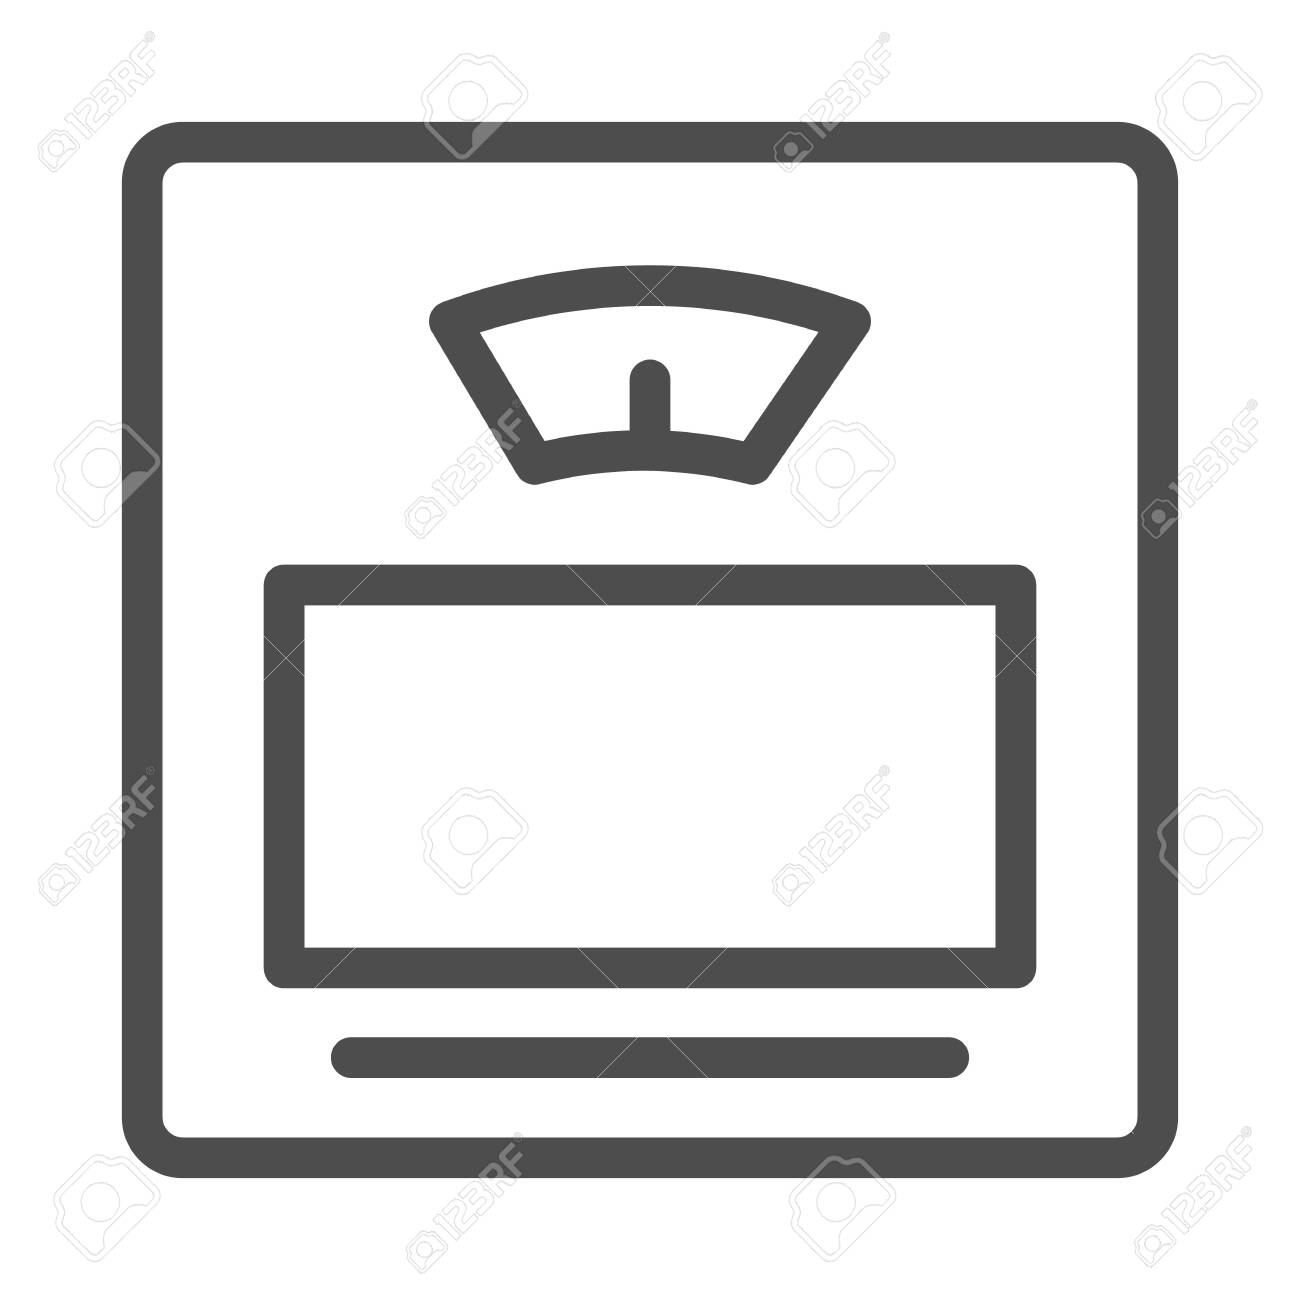 Scales line icon, Measuring devices concept, bathroom digital scale sign on white background, Home scales icon in outline style for mobile concept and web design. Vector graphics. - 148401189